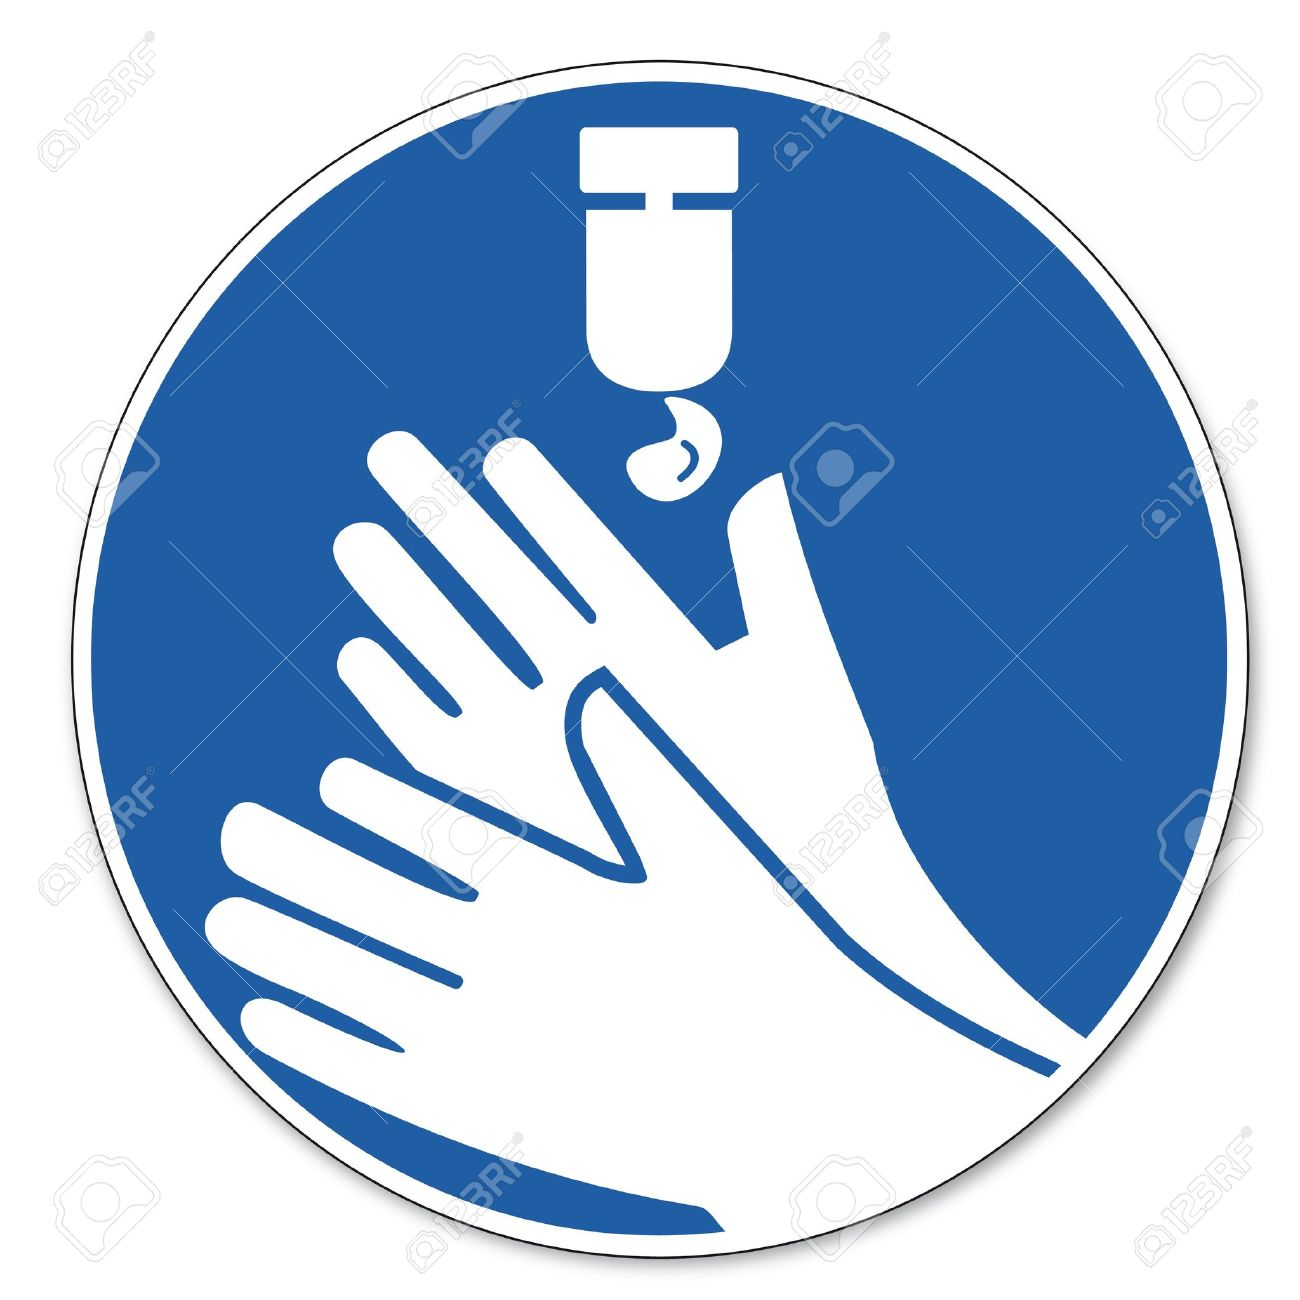 Commanded sign safety sign pictogram occupational safety sign Disinfect your hands do not forget - 14650405